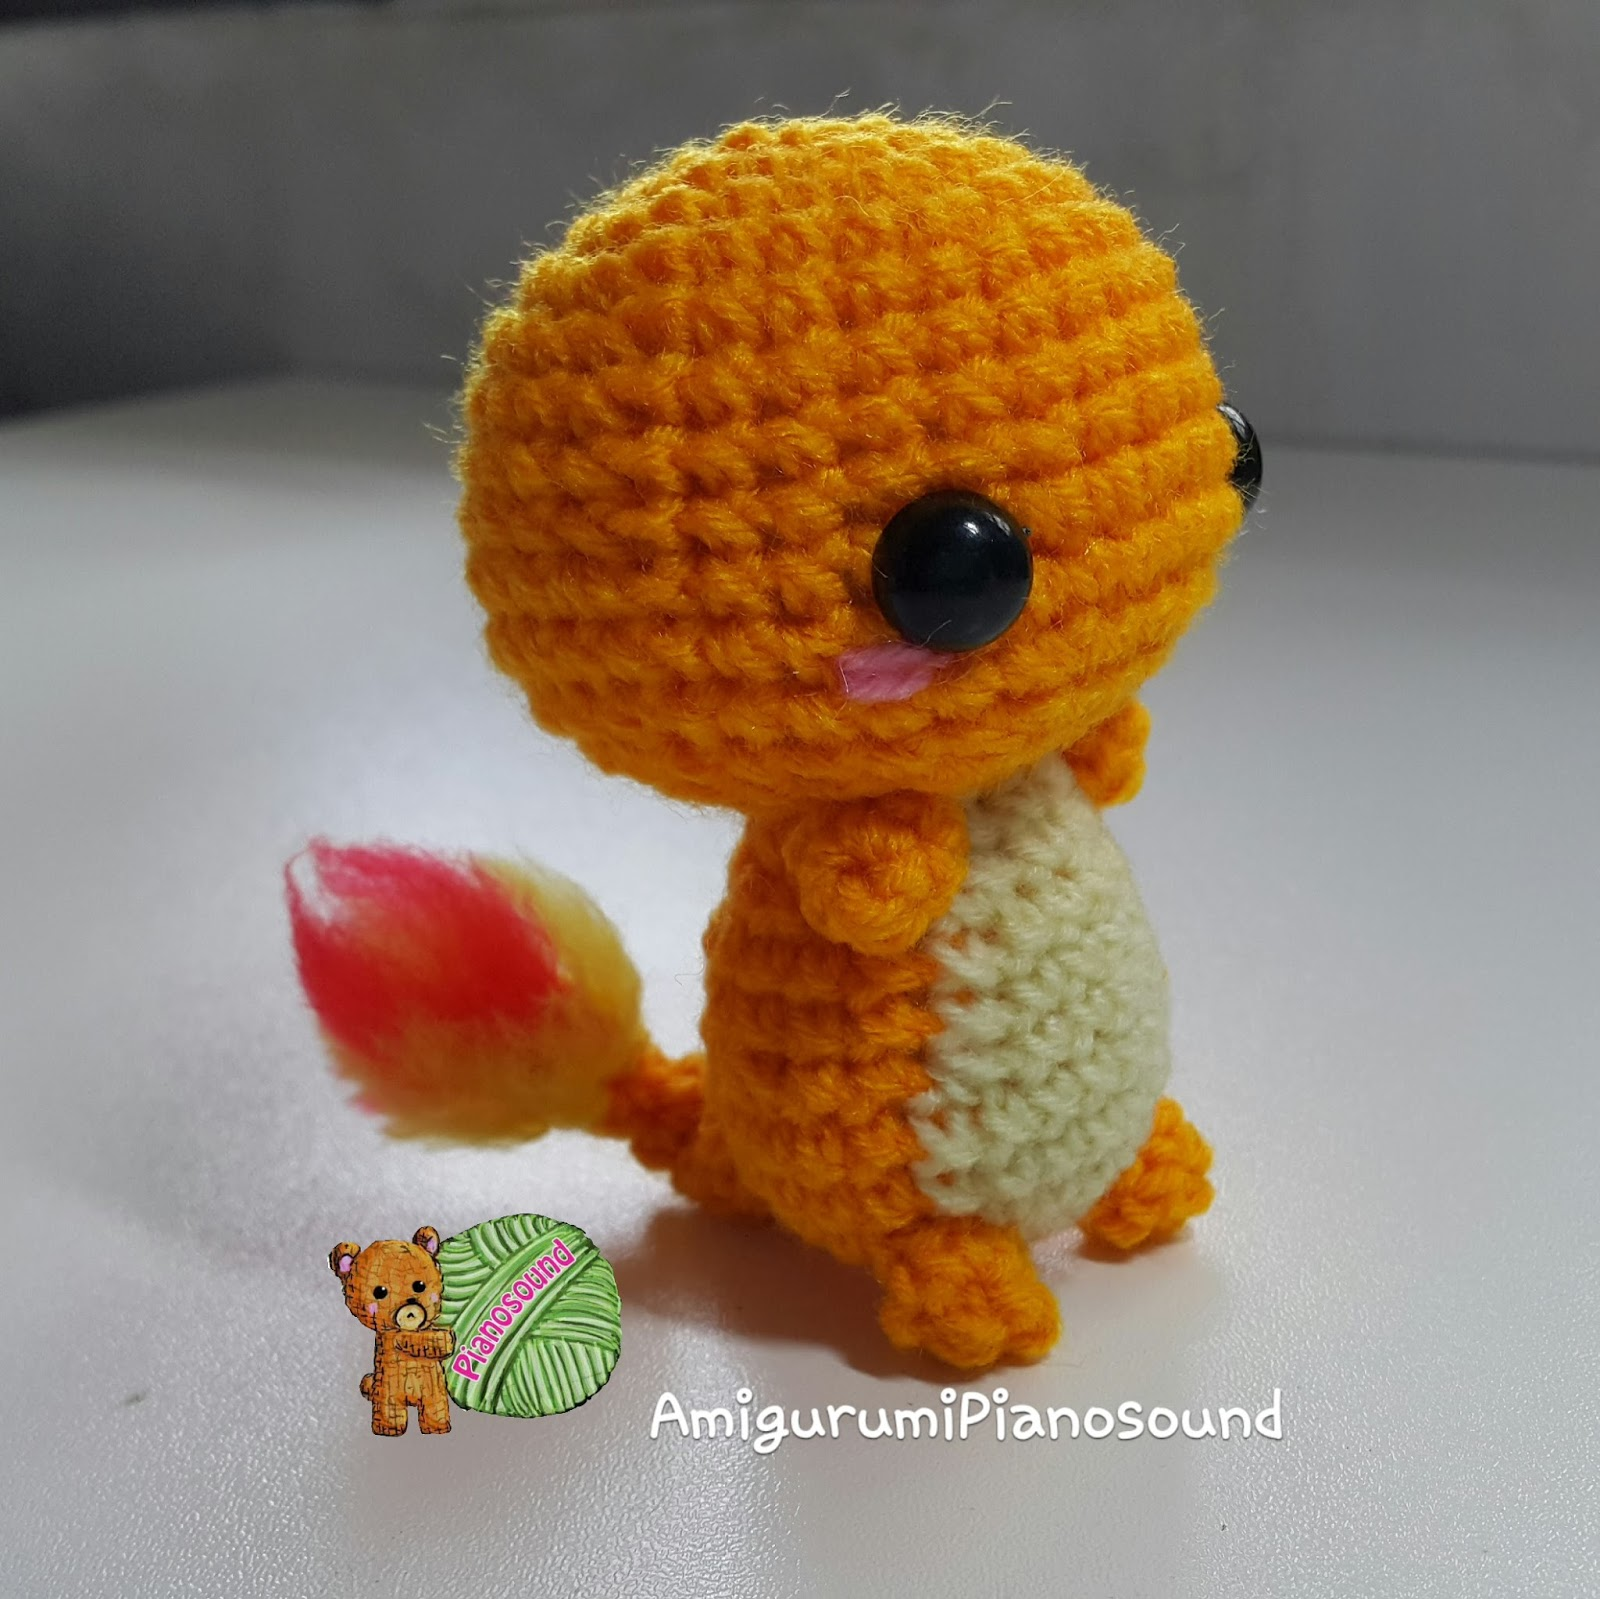 Crochet Pokemon : Charmander - Hitokage Pokemon Free Amigurumi Crochet Pattern